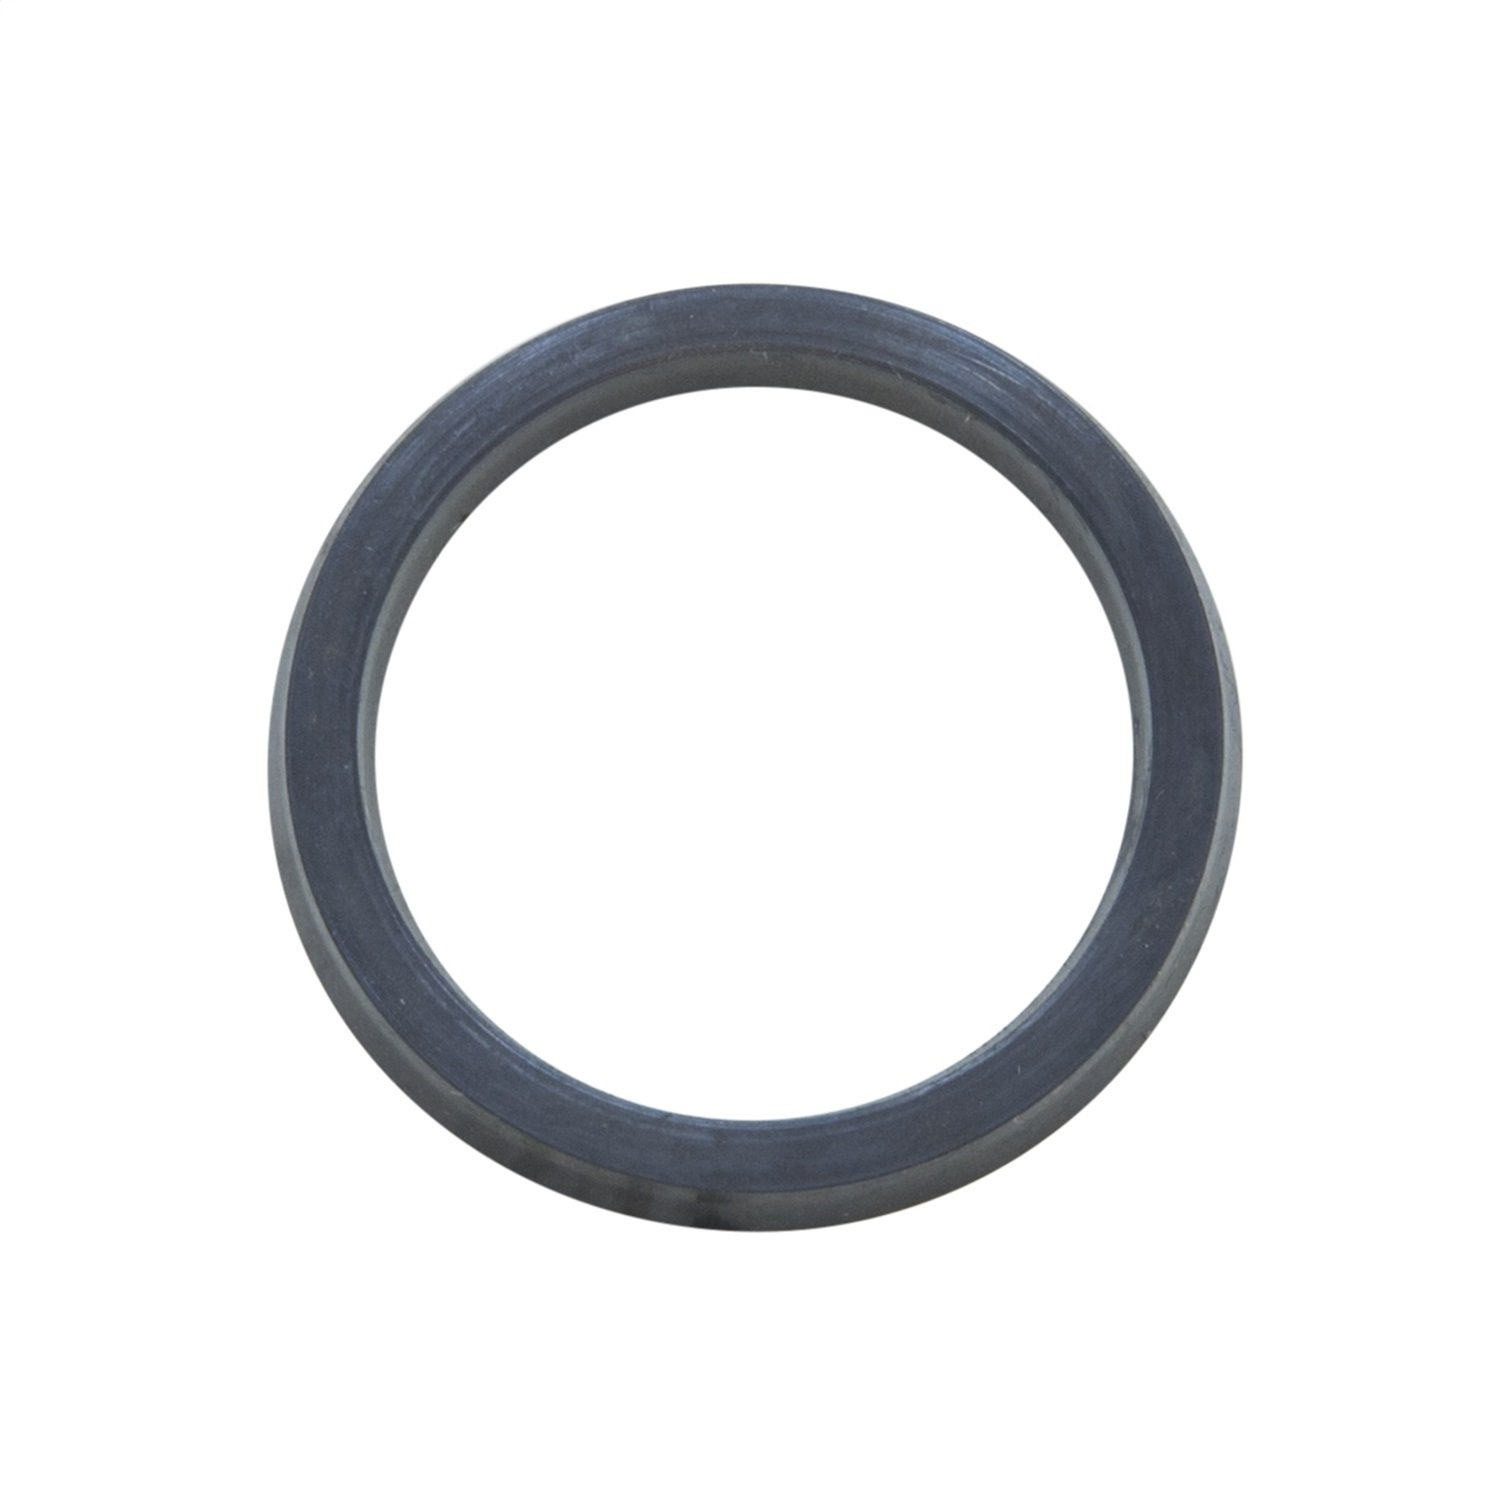 Yukon (YSPSP-009) Spindle Bearing Seal for Dana 30/44 Differential